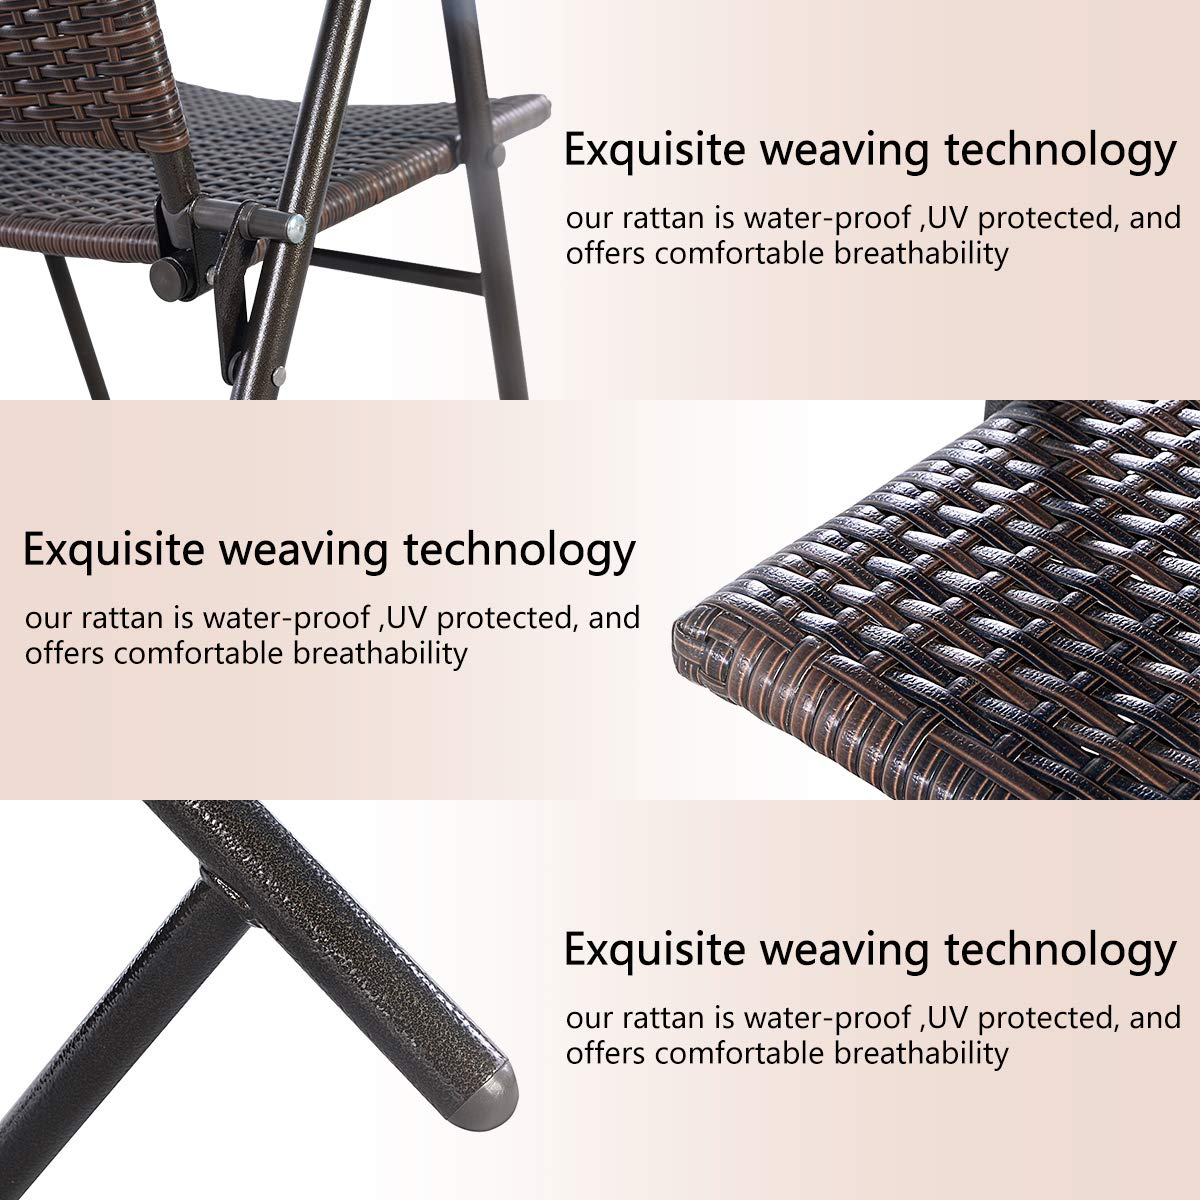 Tangkula 4 PCS Folding Patio Chair Set Outdoor Pool Lawn Portable Wicker Chair with Armrest & Footrest Durable Rattan Steel Frame Commercial Foldable Stackable Party Wedding Chair Set (24X23X37) by Tangkula (Image #8)